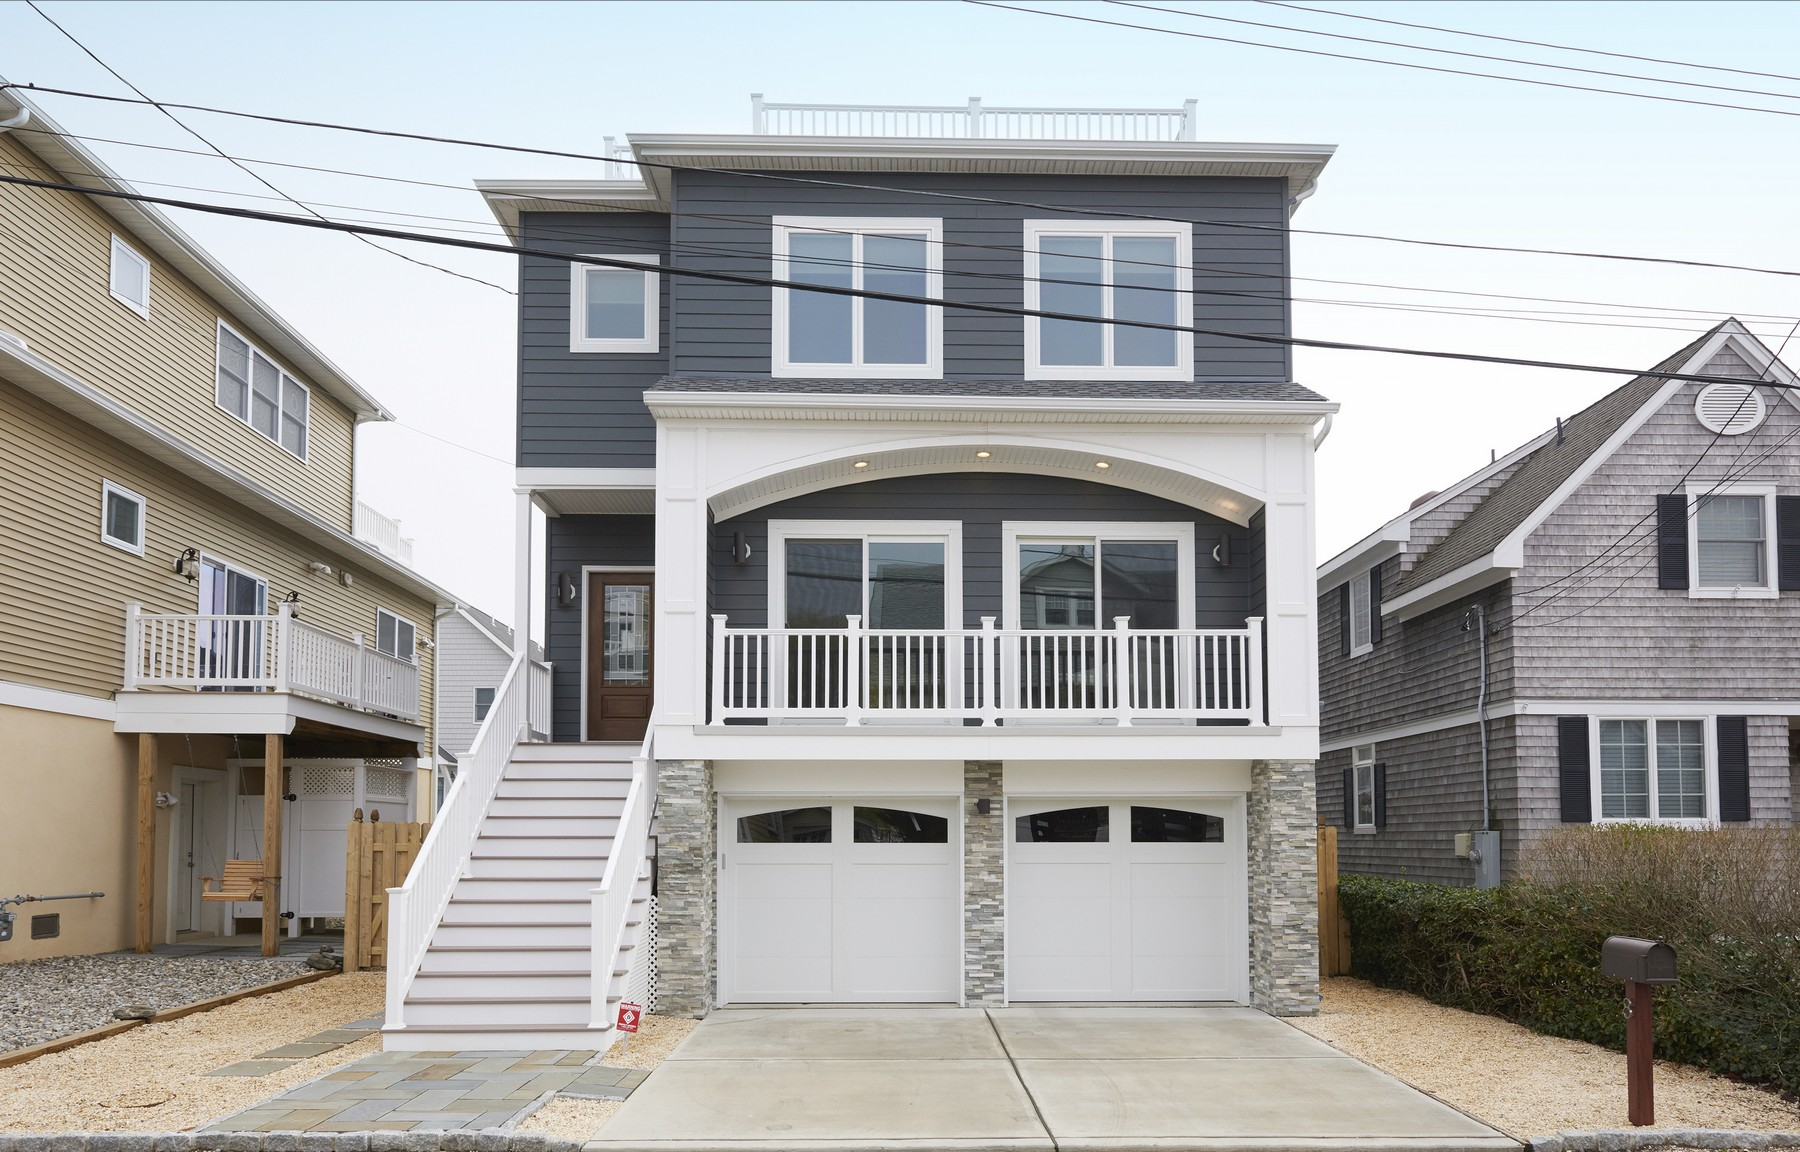 Single Family Home for Sale at Stunning Views 8 Shrewsbury Way Sea Bright, New Jersey 07760 United States